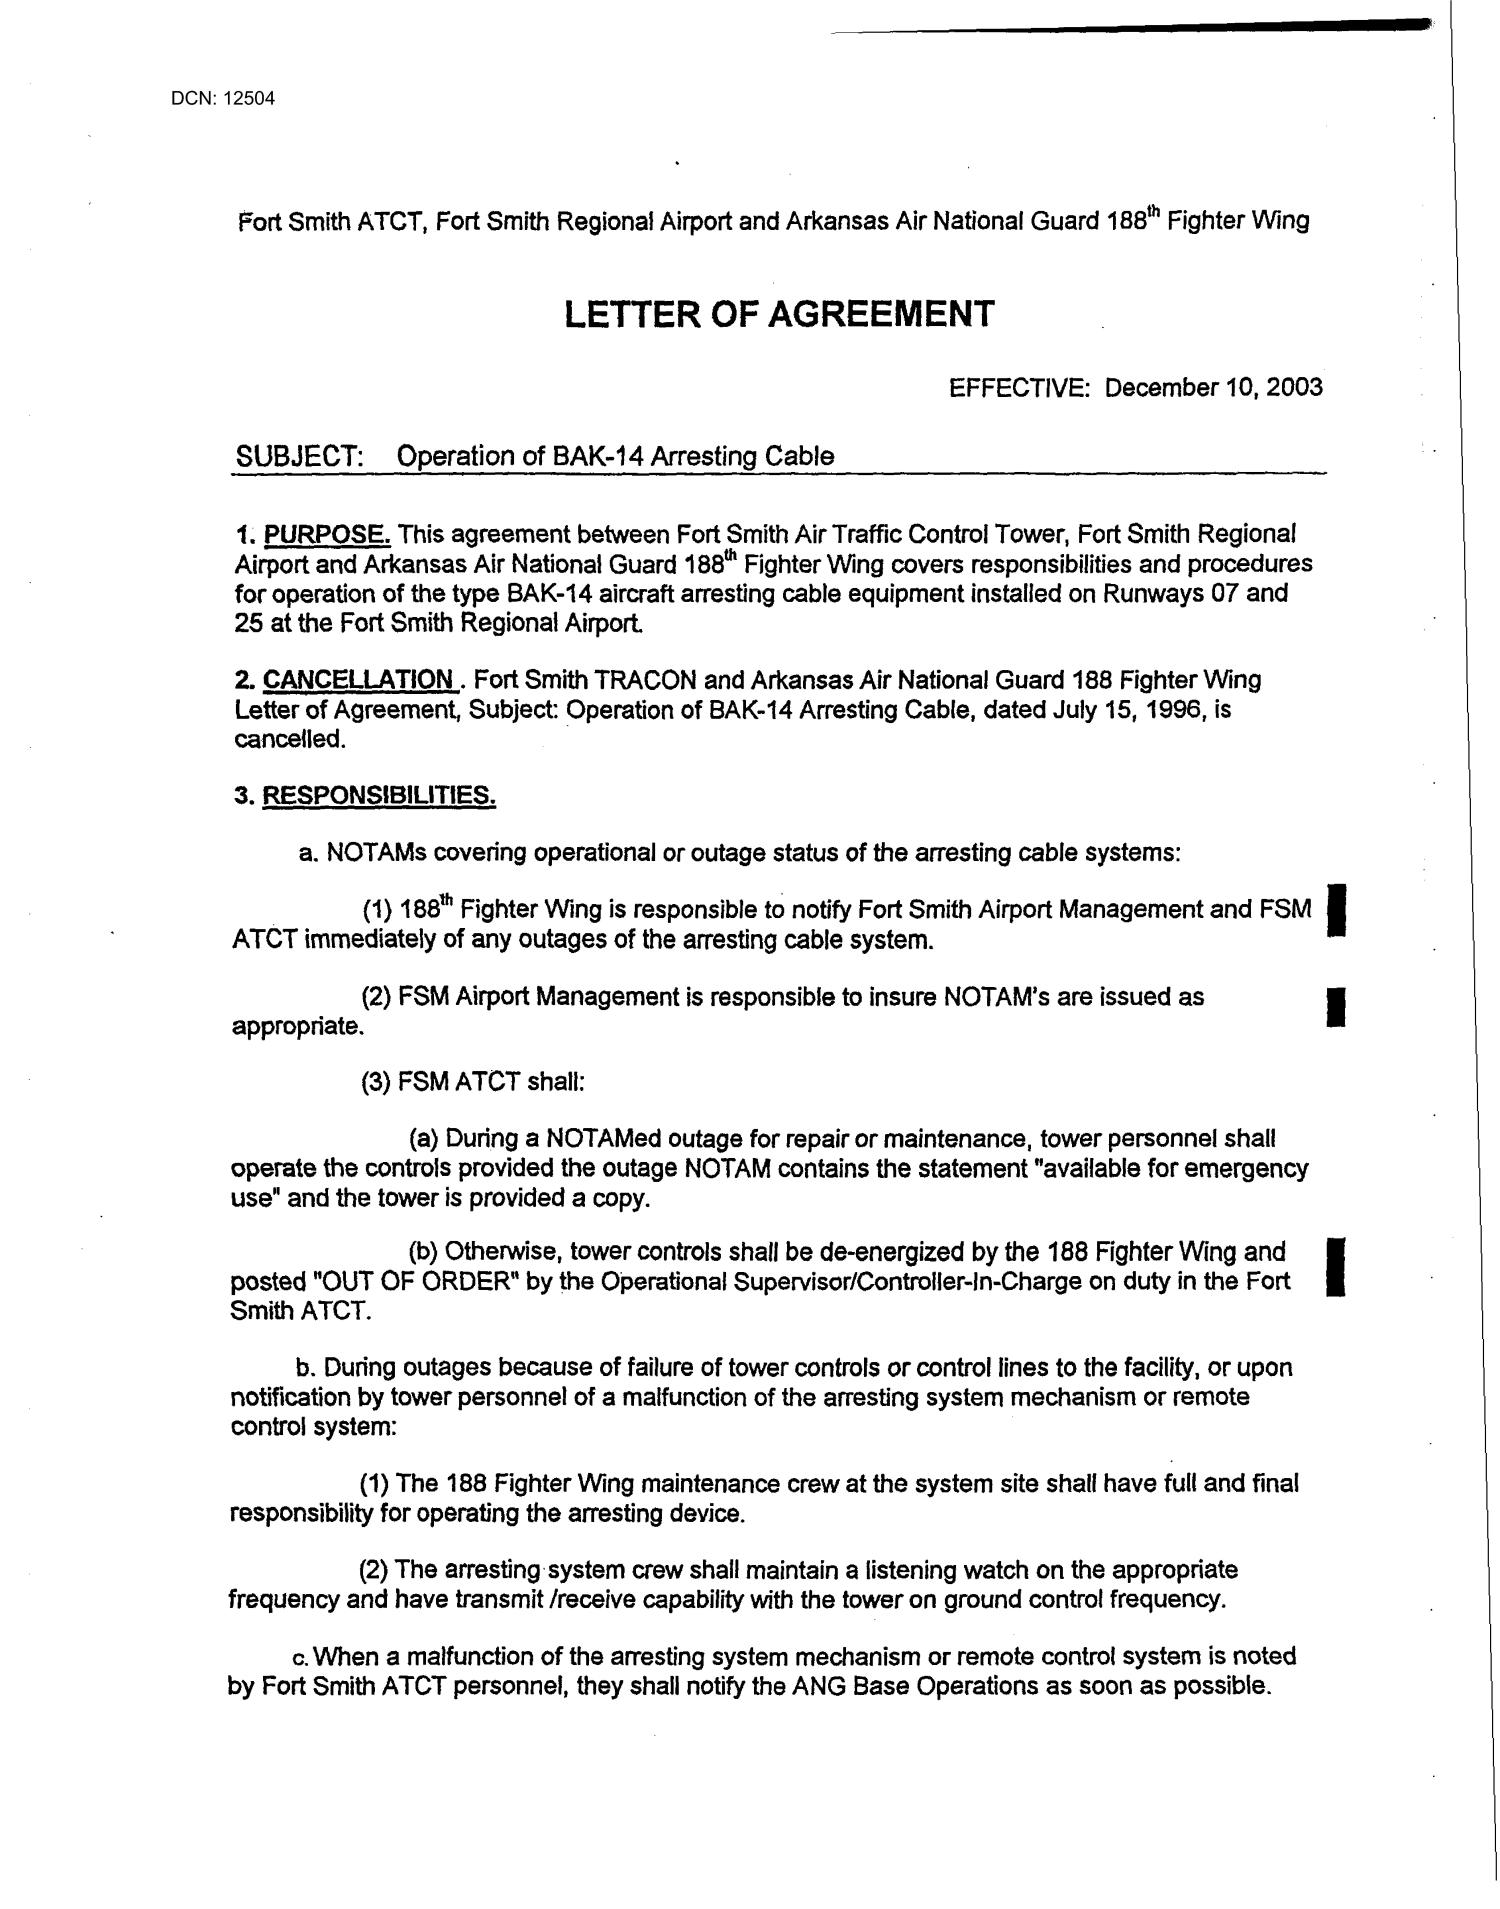 RH13 - Statements and Testimony - Page 12 of 51 - Digital Library